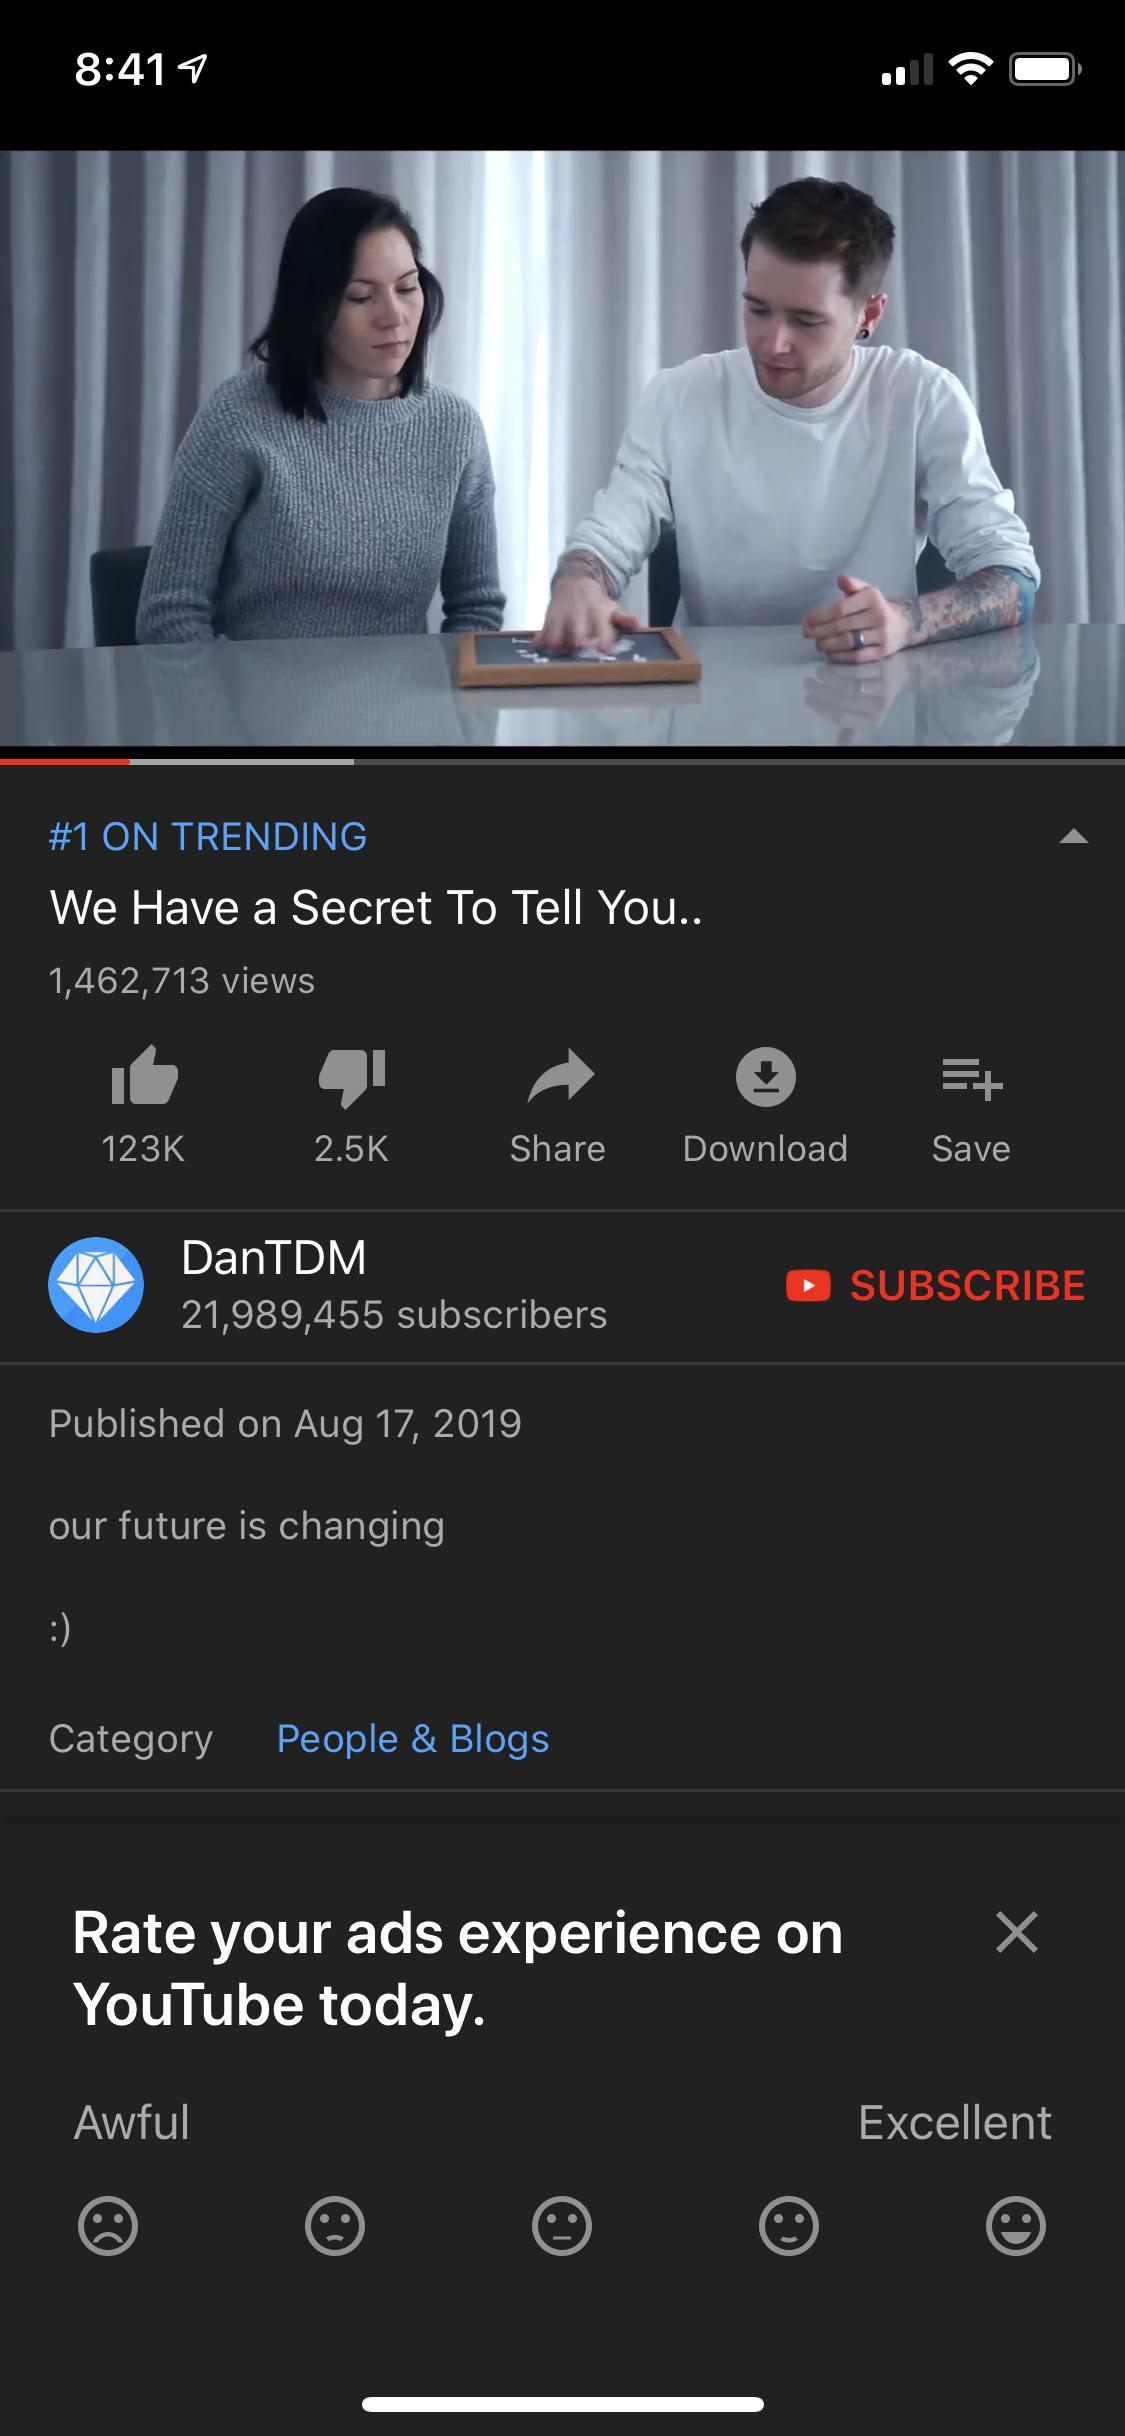 Youtube ads with premium